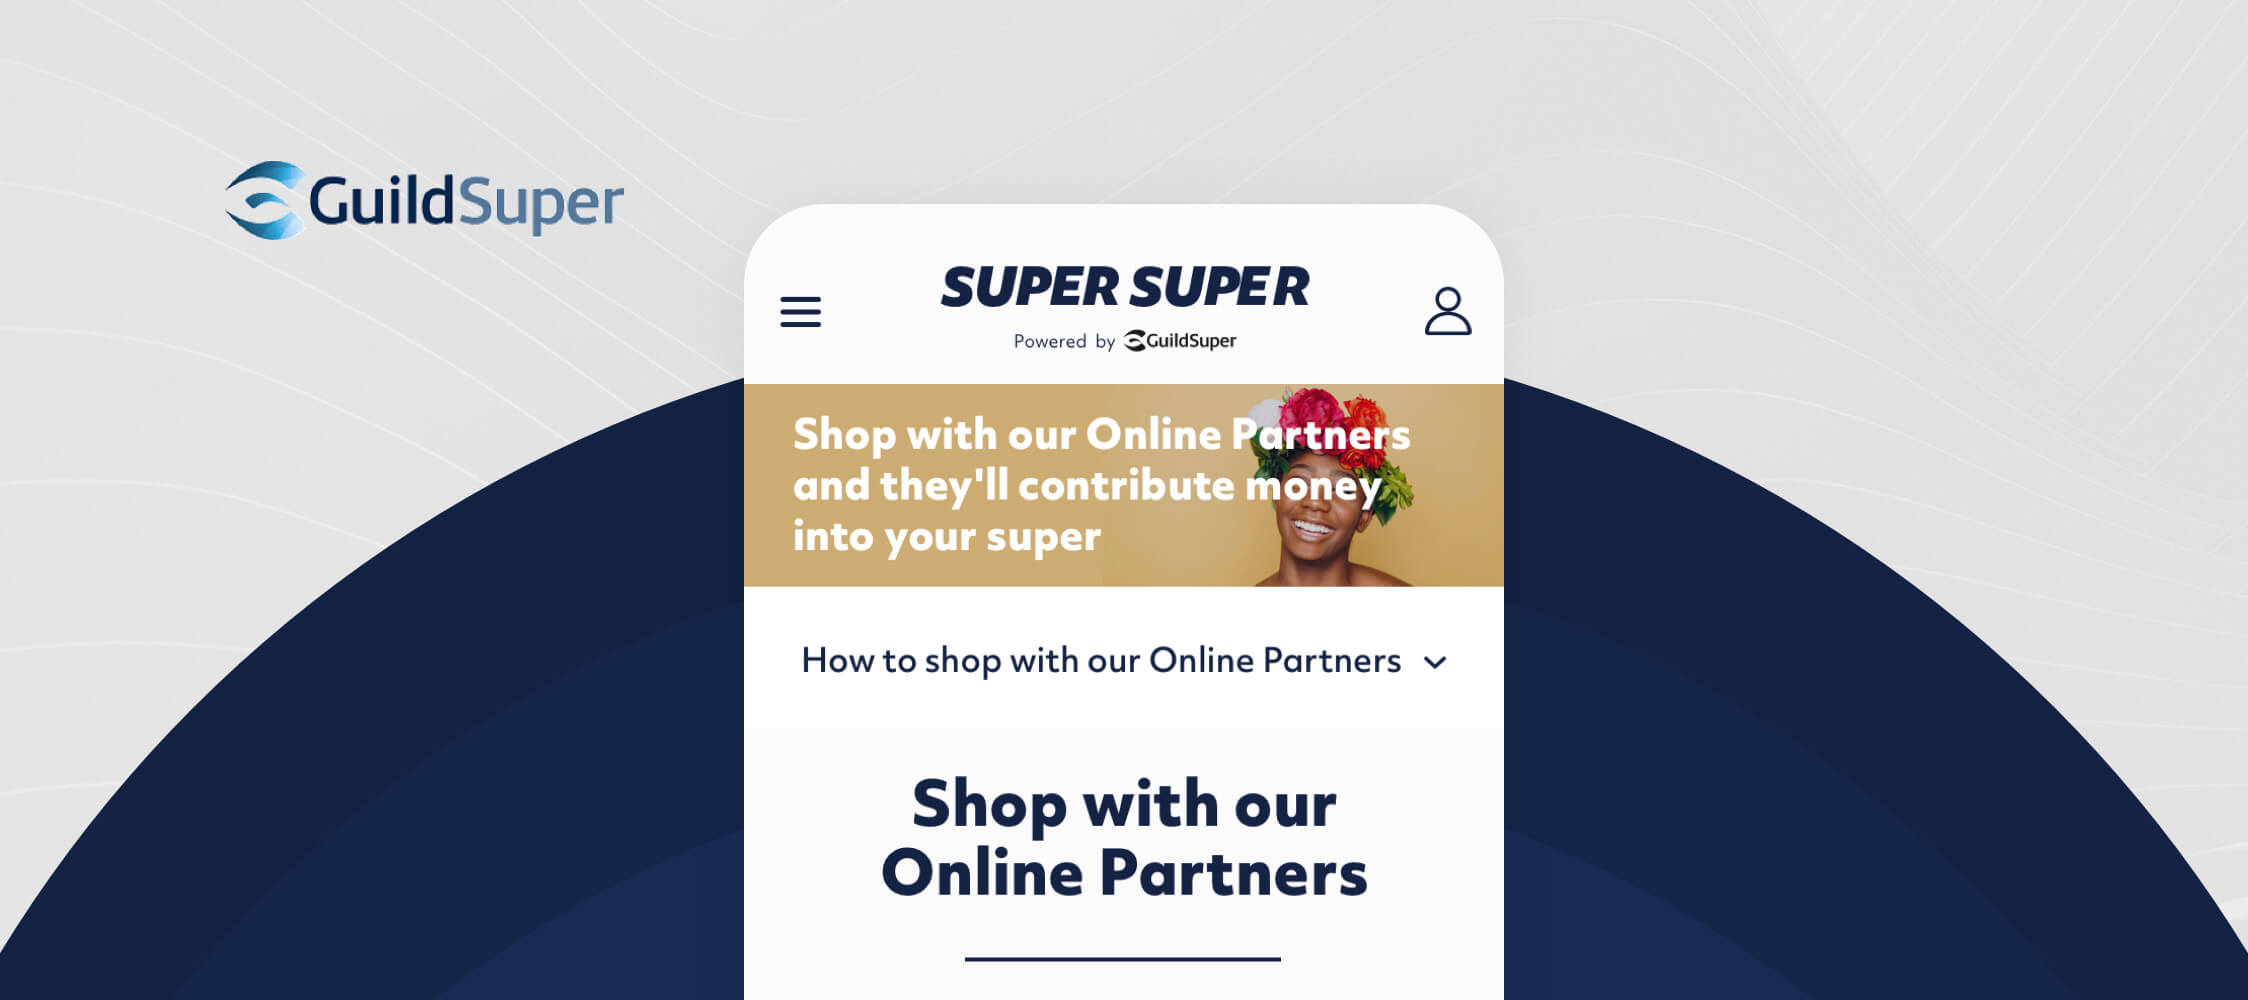 Guild Super SuperSuper Vue js web development